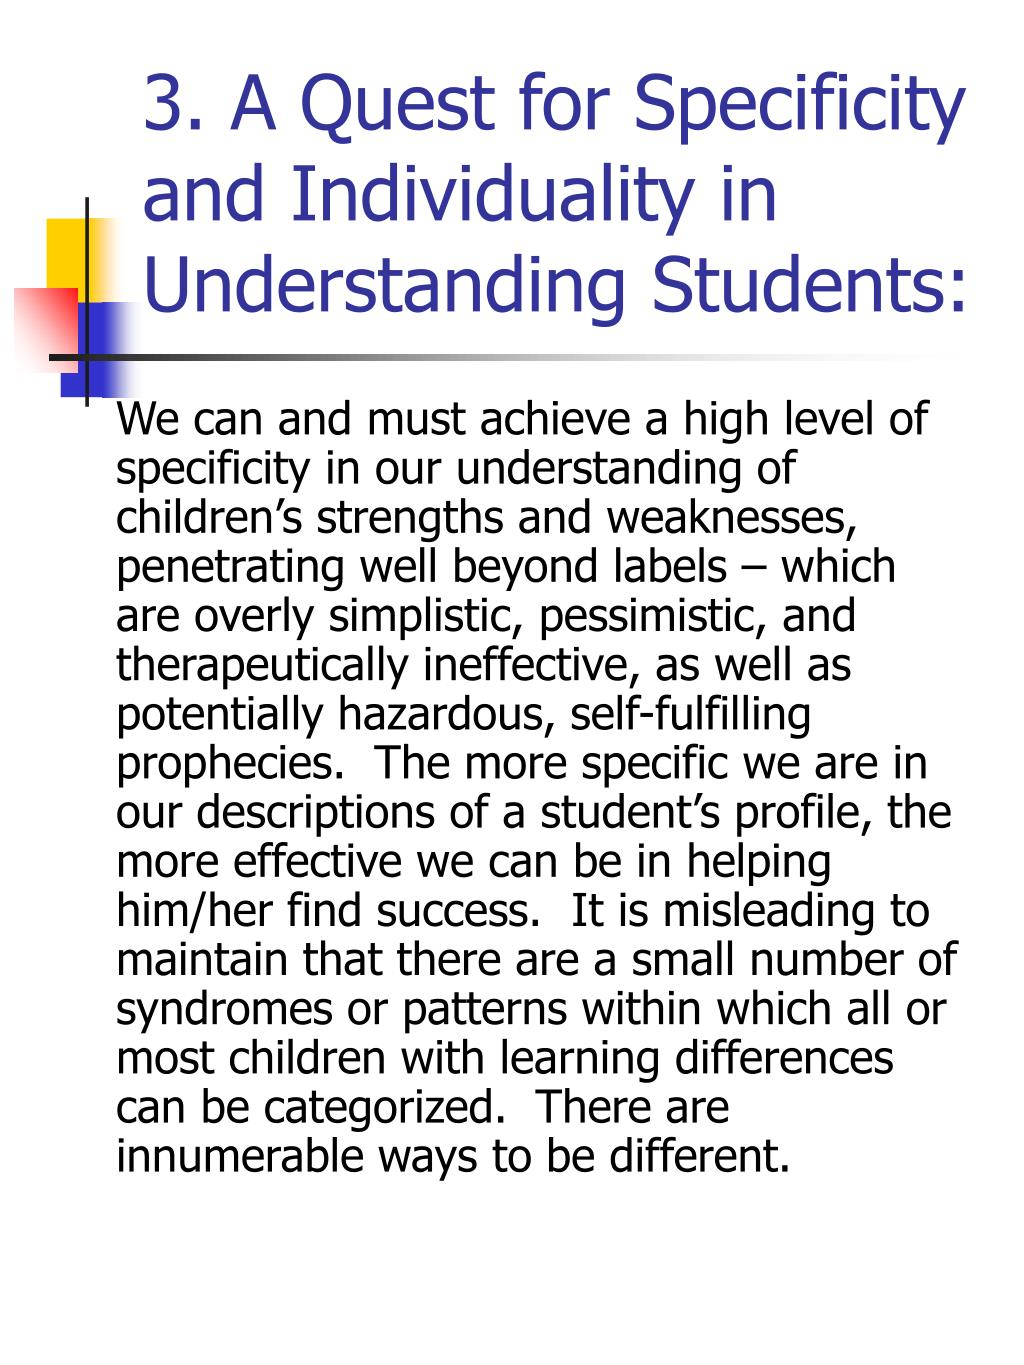 3. A Quest for Specificity and Individuality in Understanding Students: